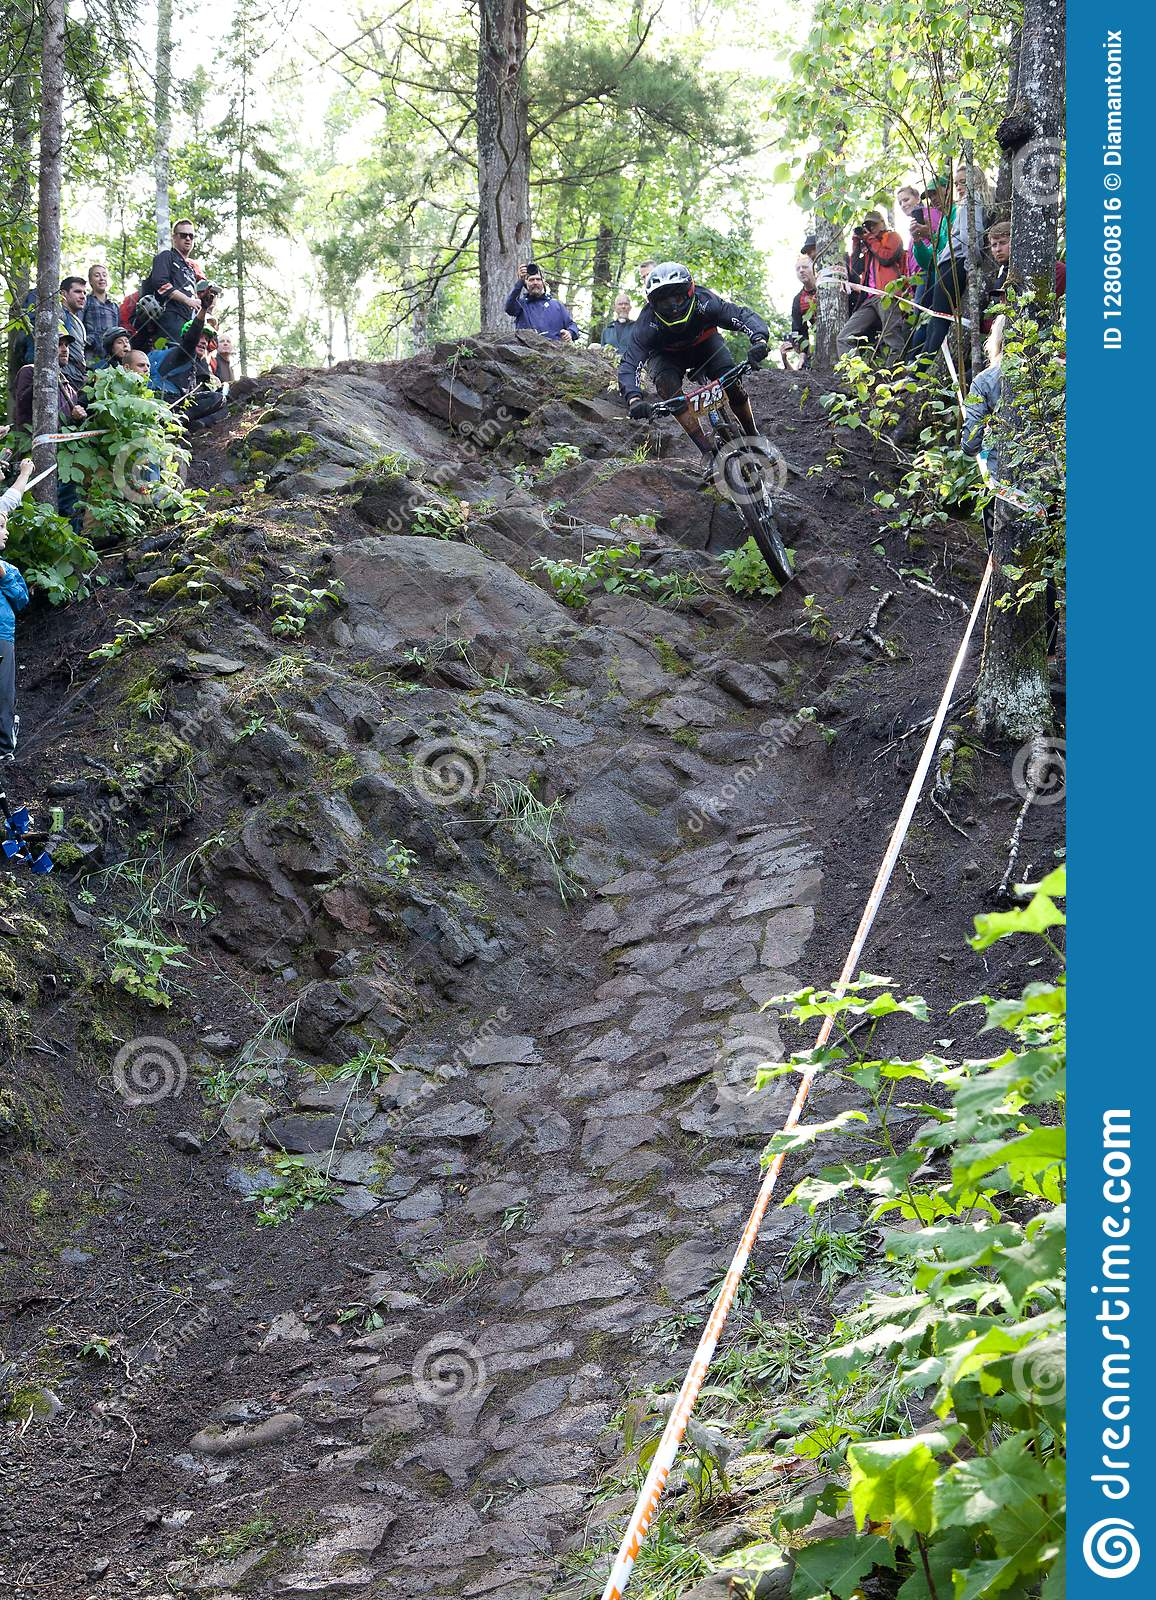 On 9/2/2017 in Copper Harbor, Michigan mountain biker launching from the cliff during enduro race